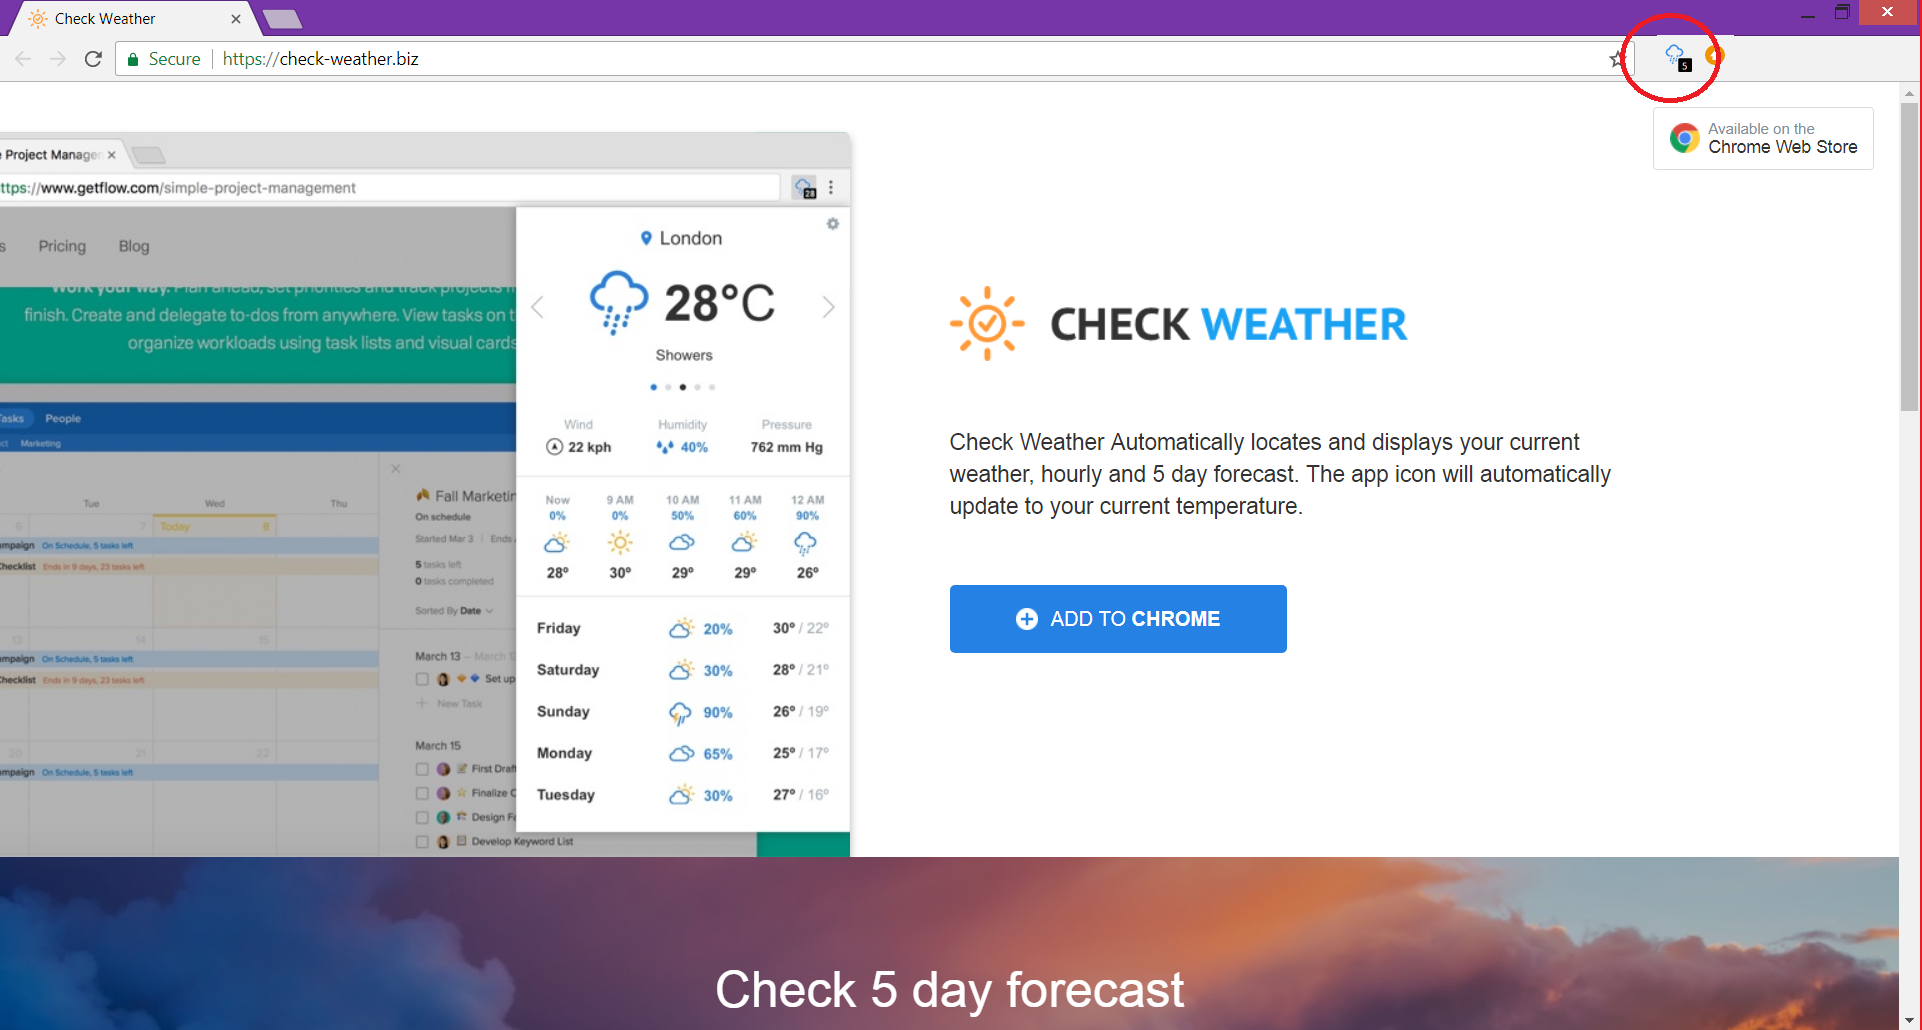 website check-weather.biz associated with check weather chrome extension